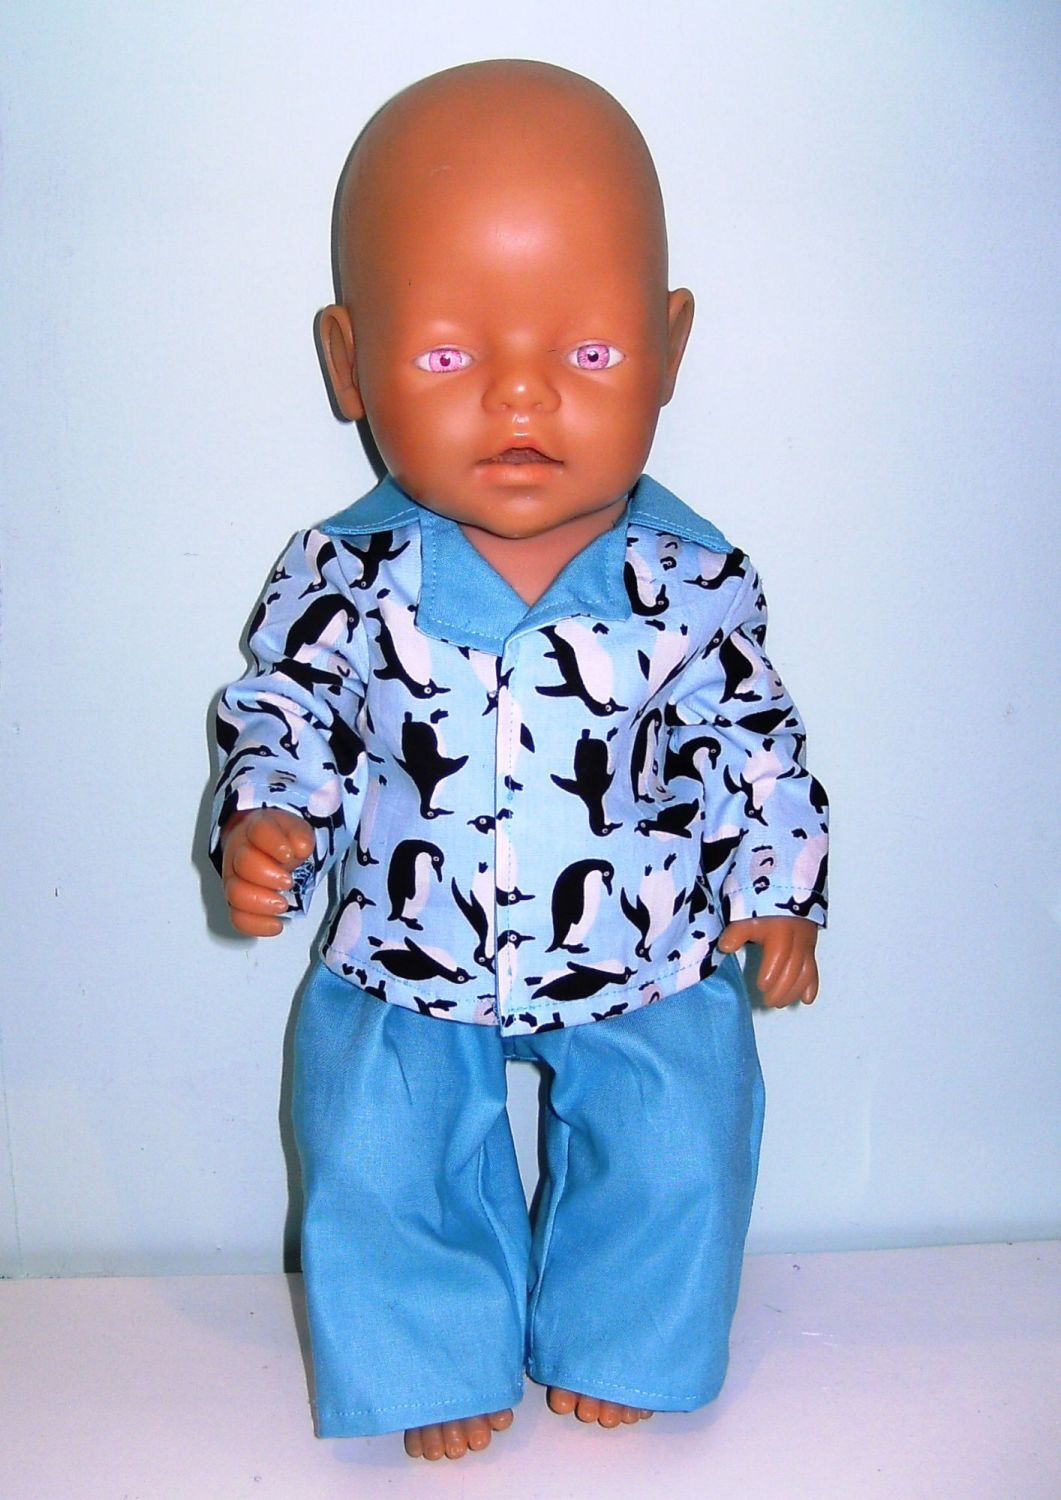 Doll's pajamas for Baby Born Boy doll